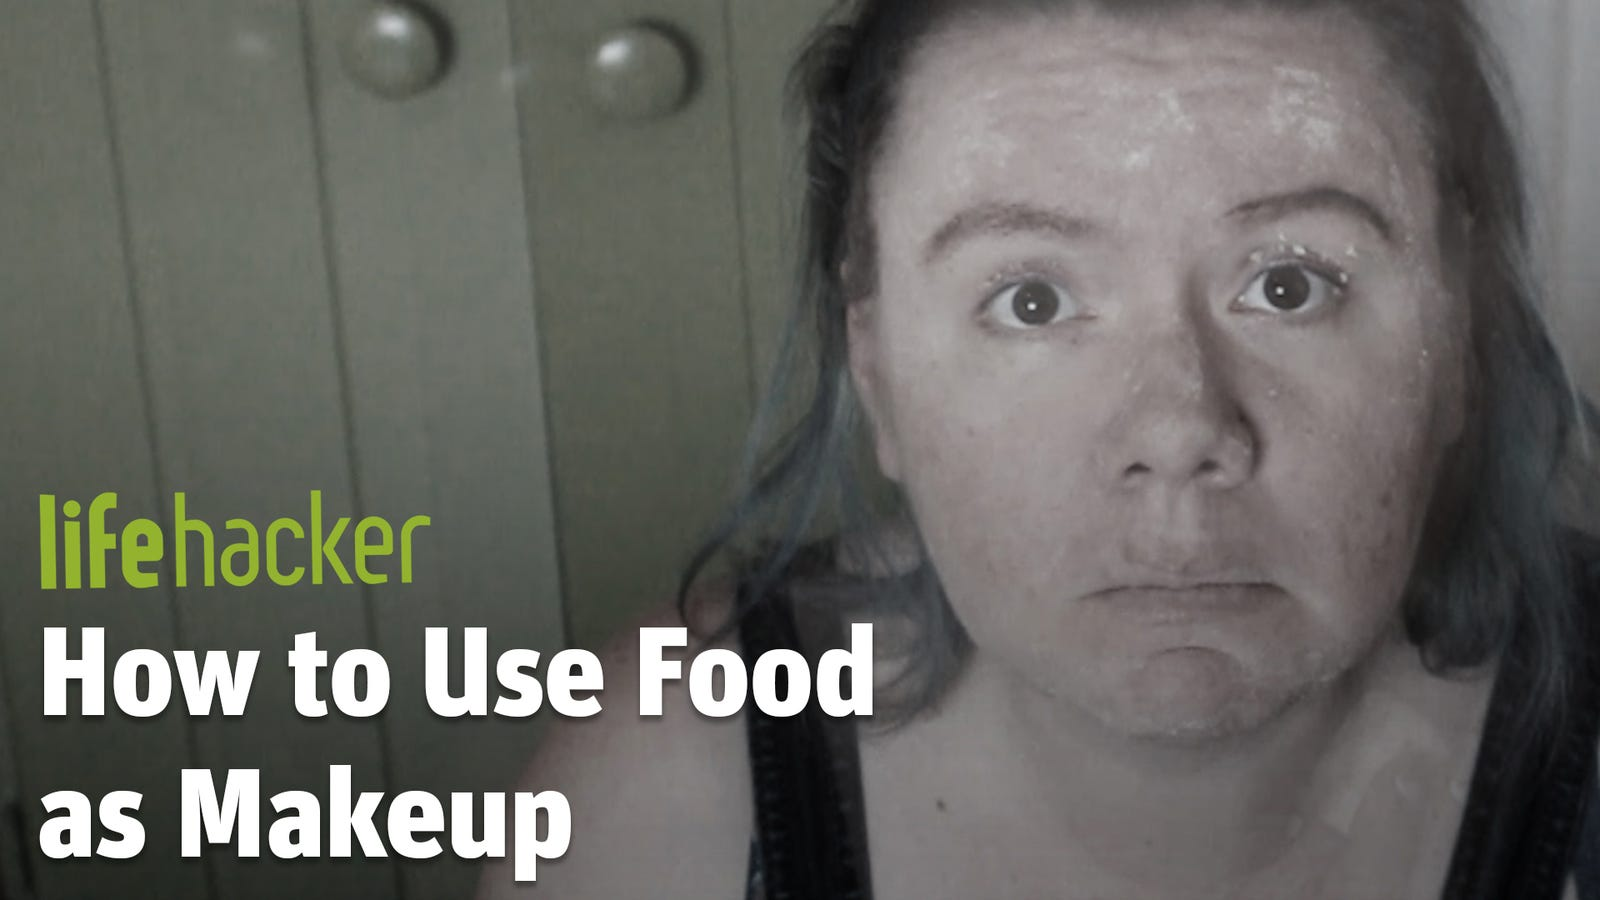 I Tried Using Food as Makeup and It Went Poorly